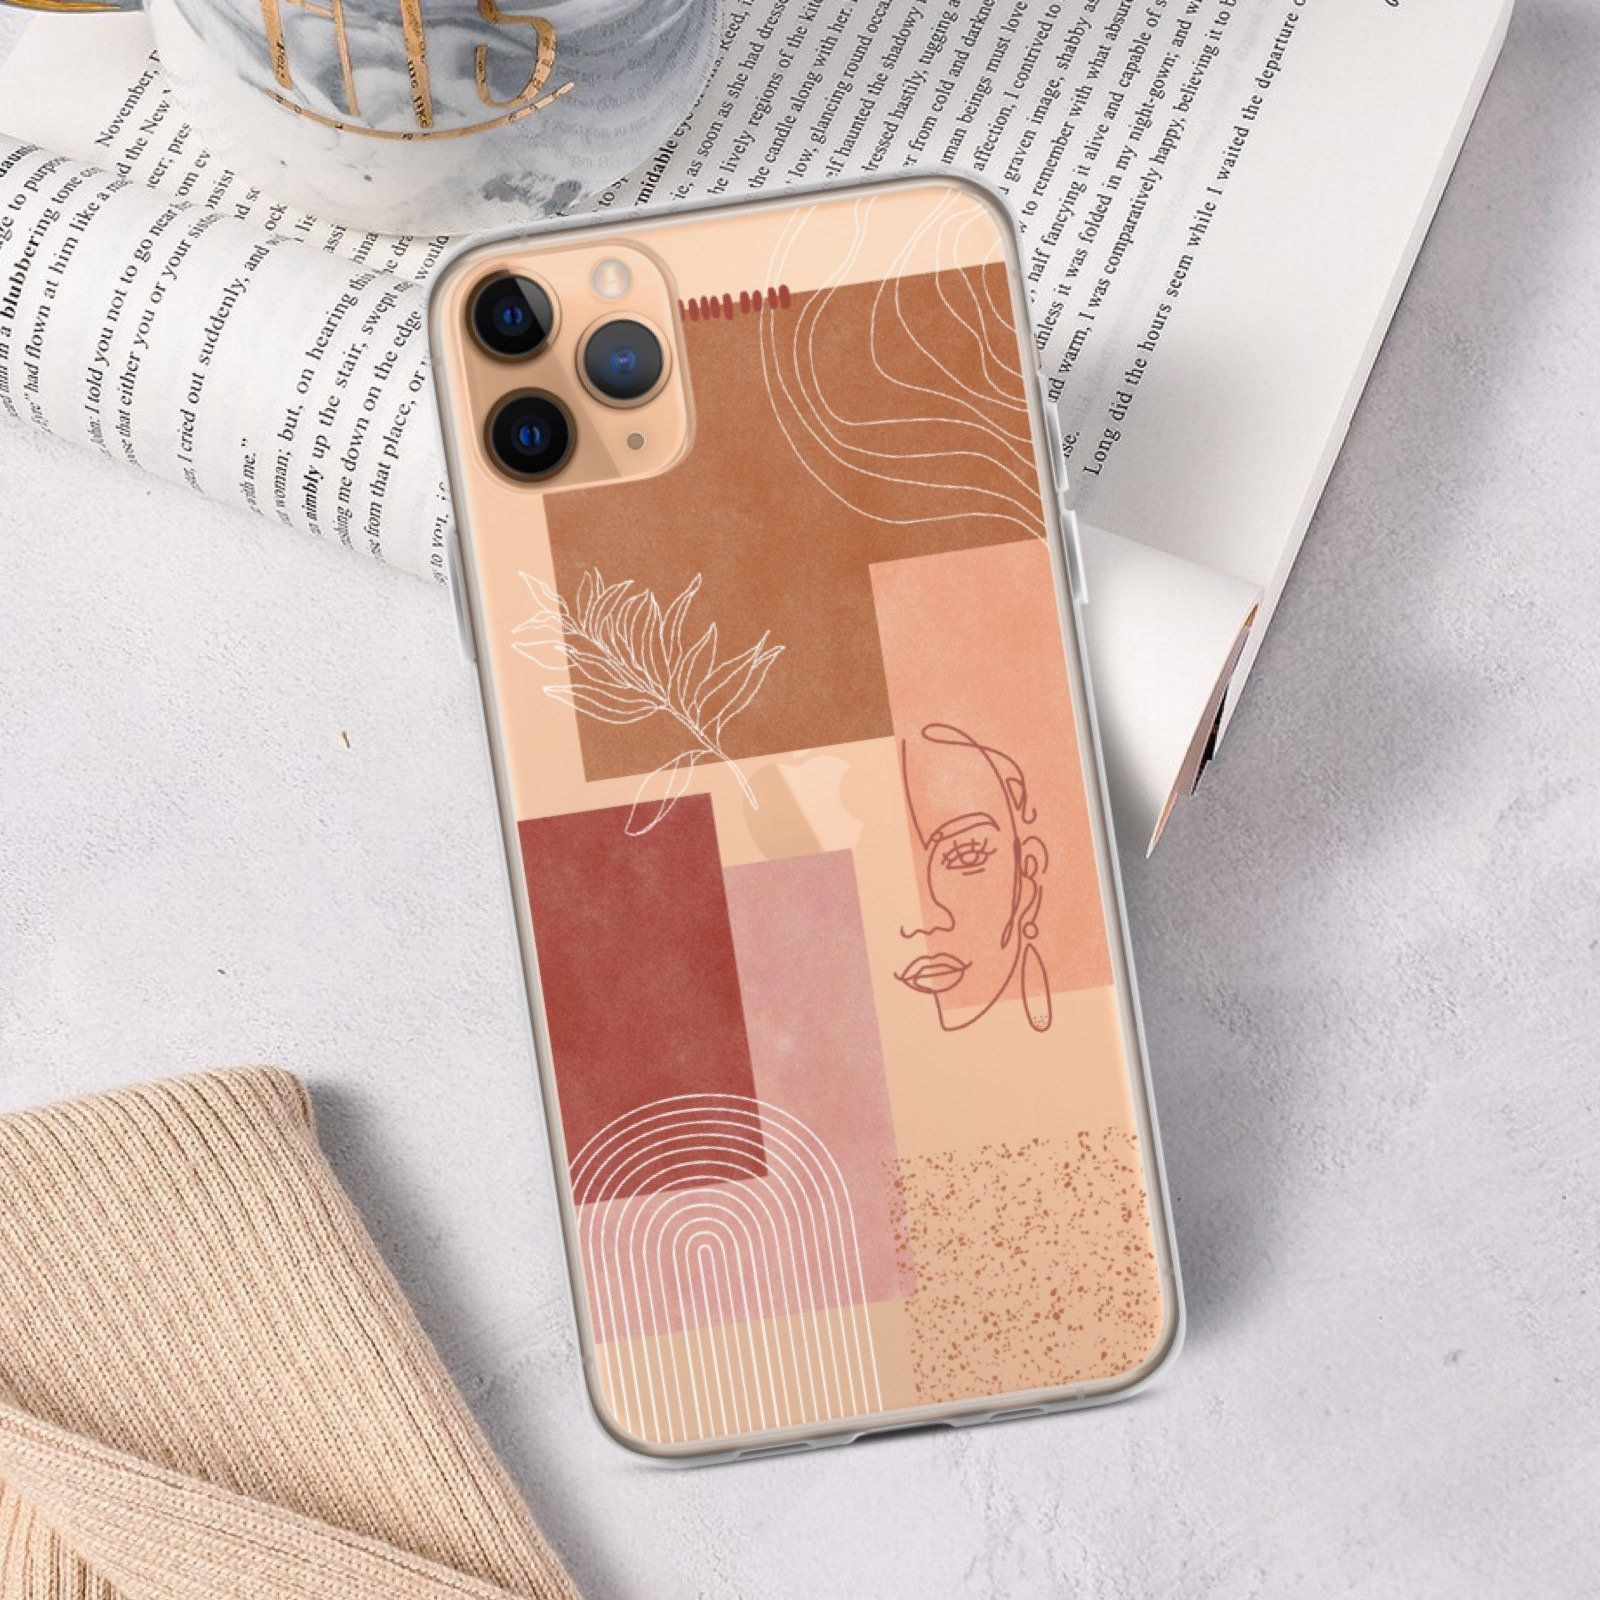 Aesthetic Abstract Iphone Case Clear Phone Case For Iphone 11 Etsy In 2020 Abstract Iphone Case Iphone Cases Tough Iphone Case